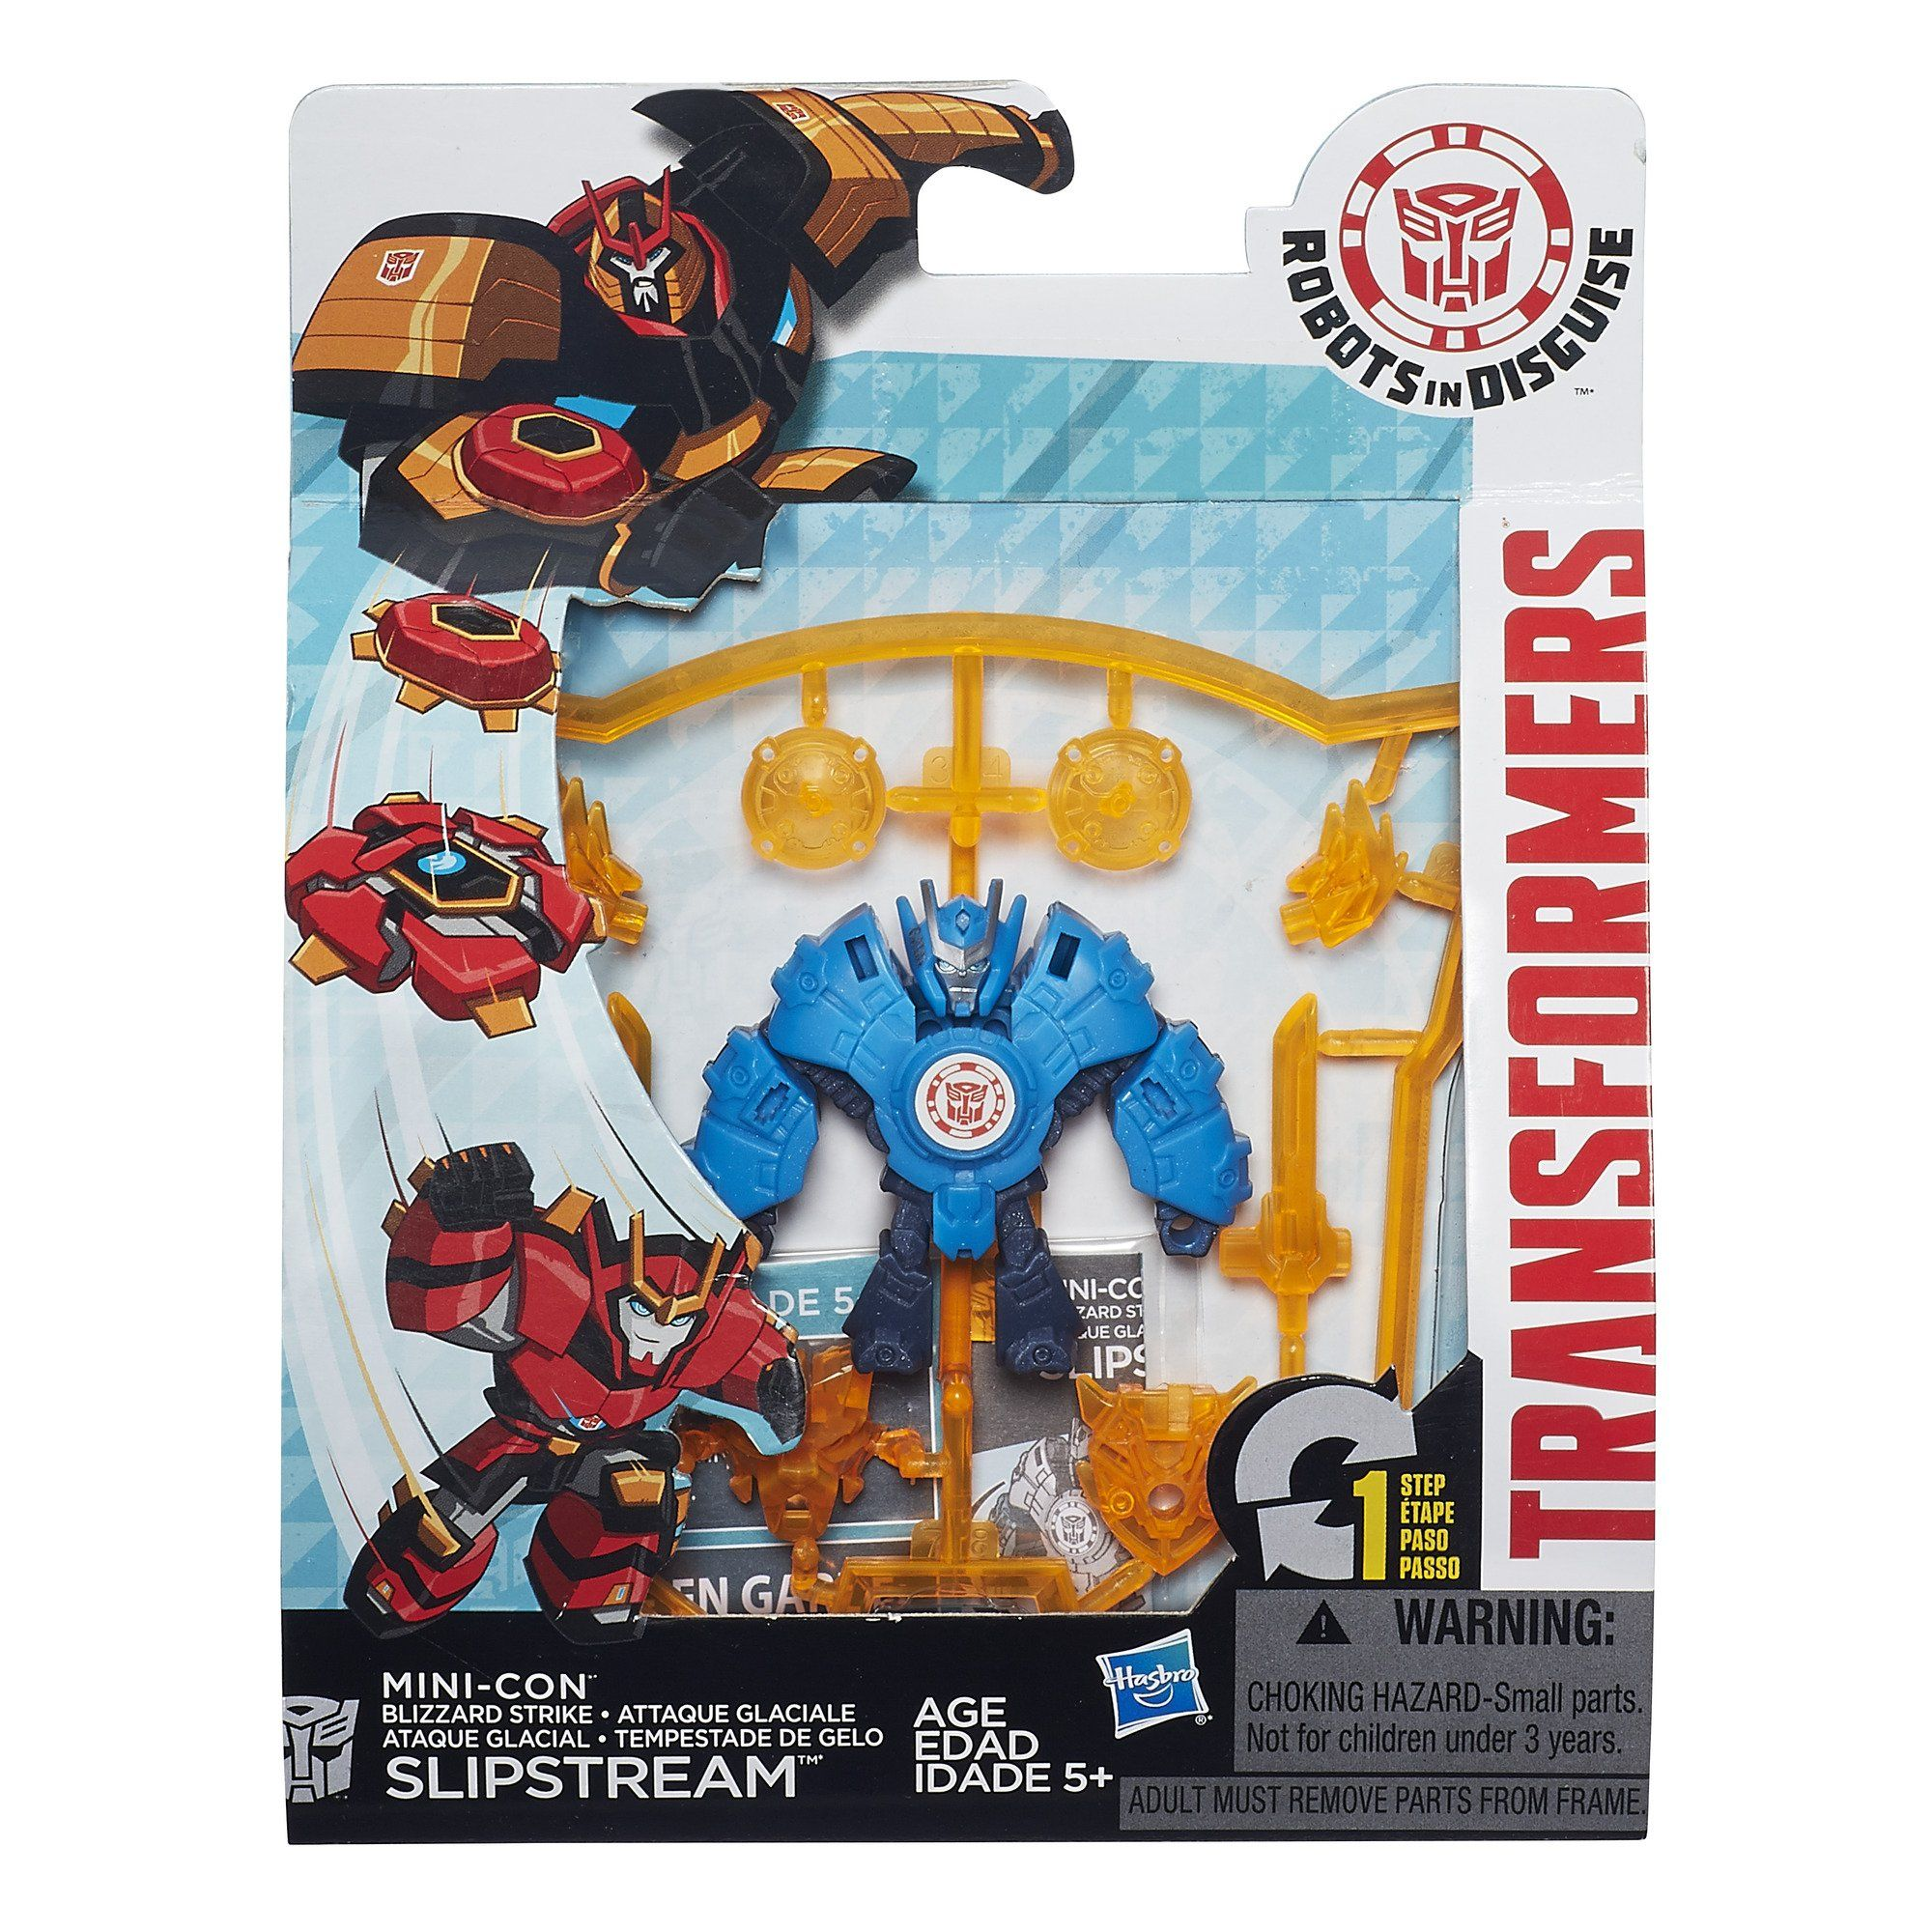 Transformers Robots in Disguise Tiny Titans Wave 5 Mini Figure Autobot Drift